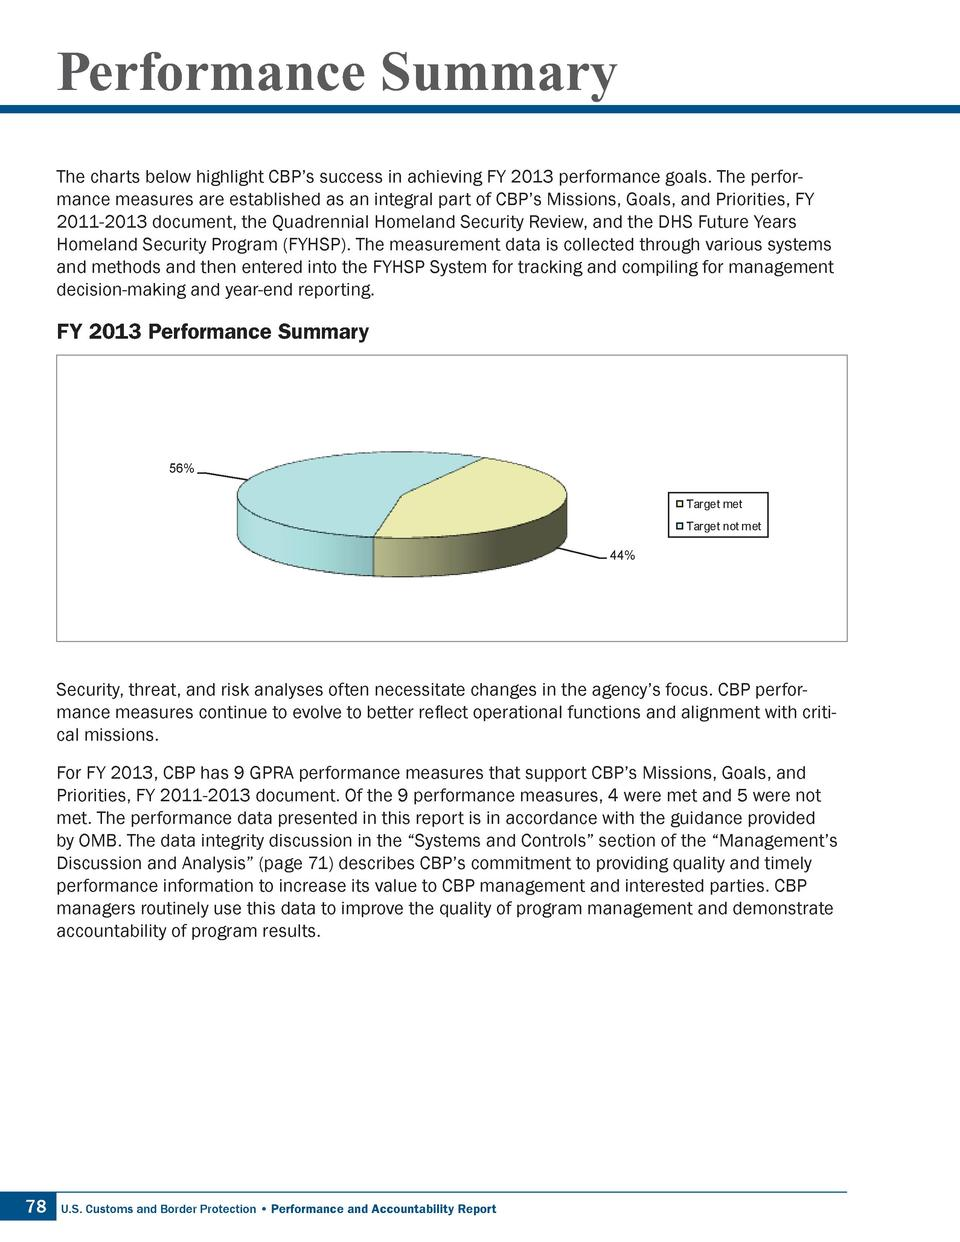 Performance Summary The charts below highlight CBP   s success in achieving FY 2013 performance goals. The performance mea...